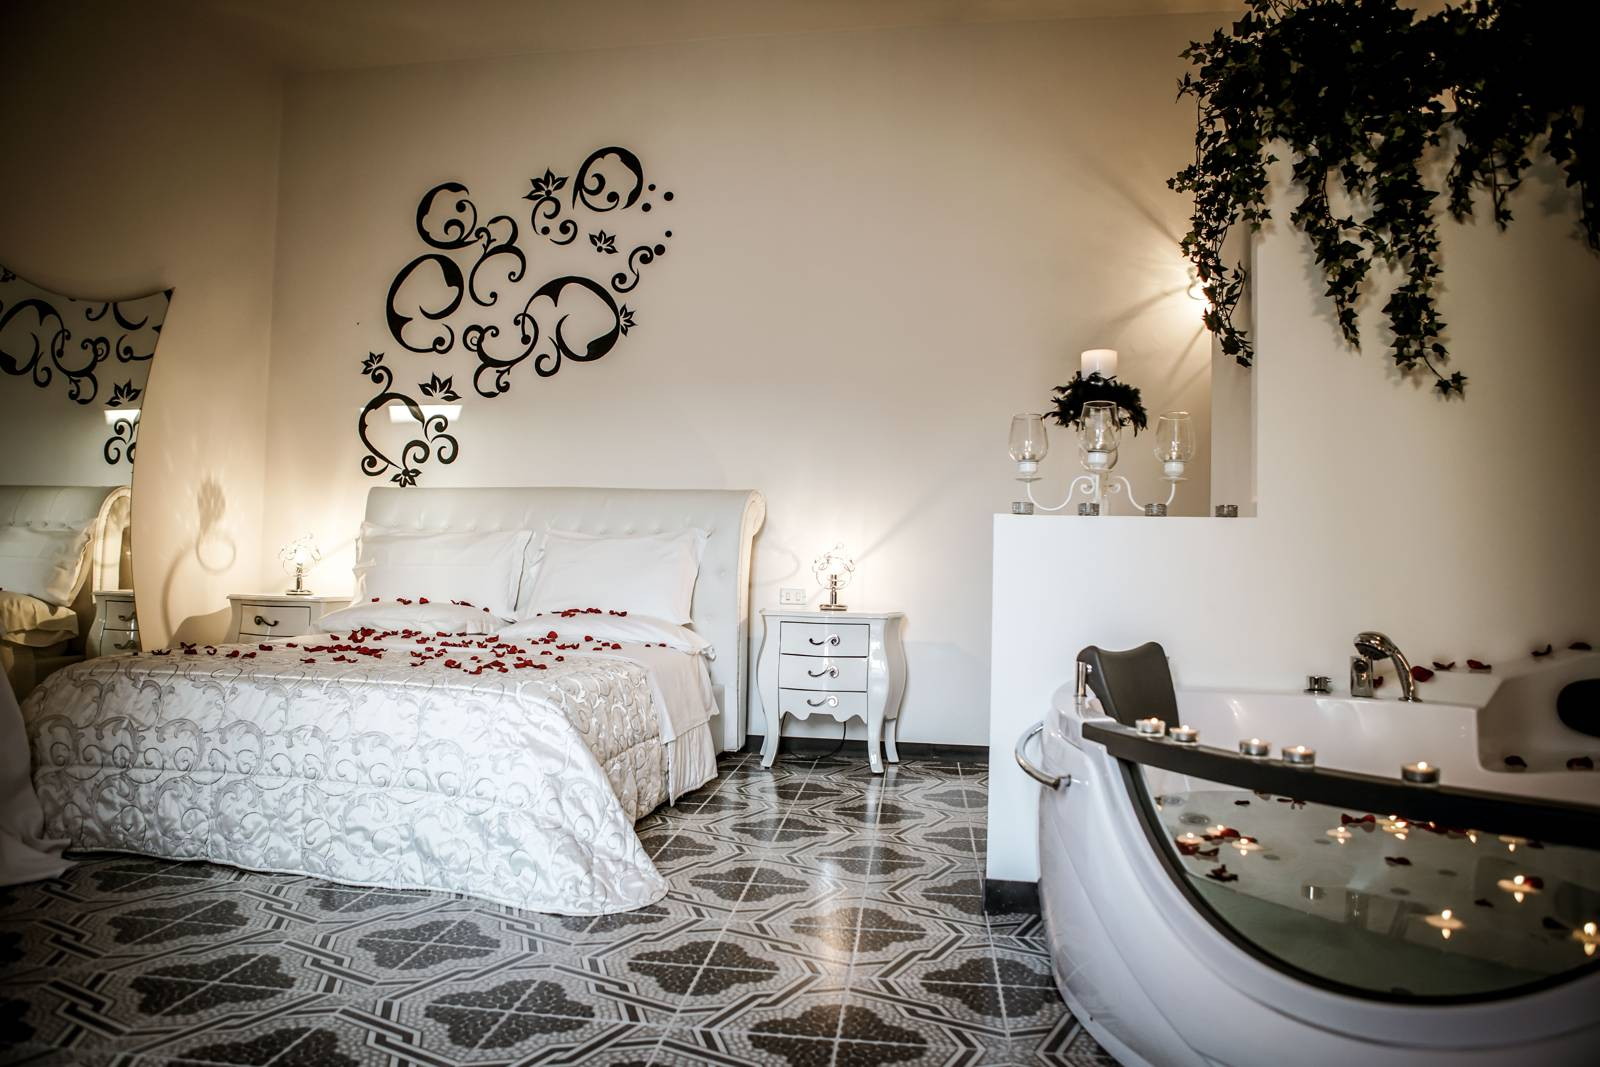 Siti web Bed and Breakfast: B&B Il Sogno di Pandora - Maingage, Web agency Bari